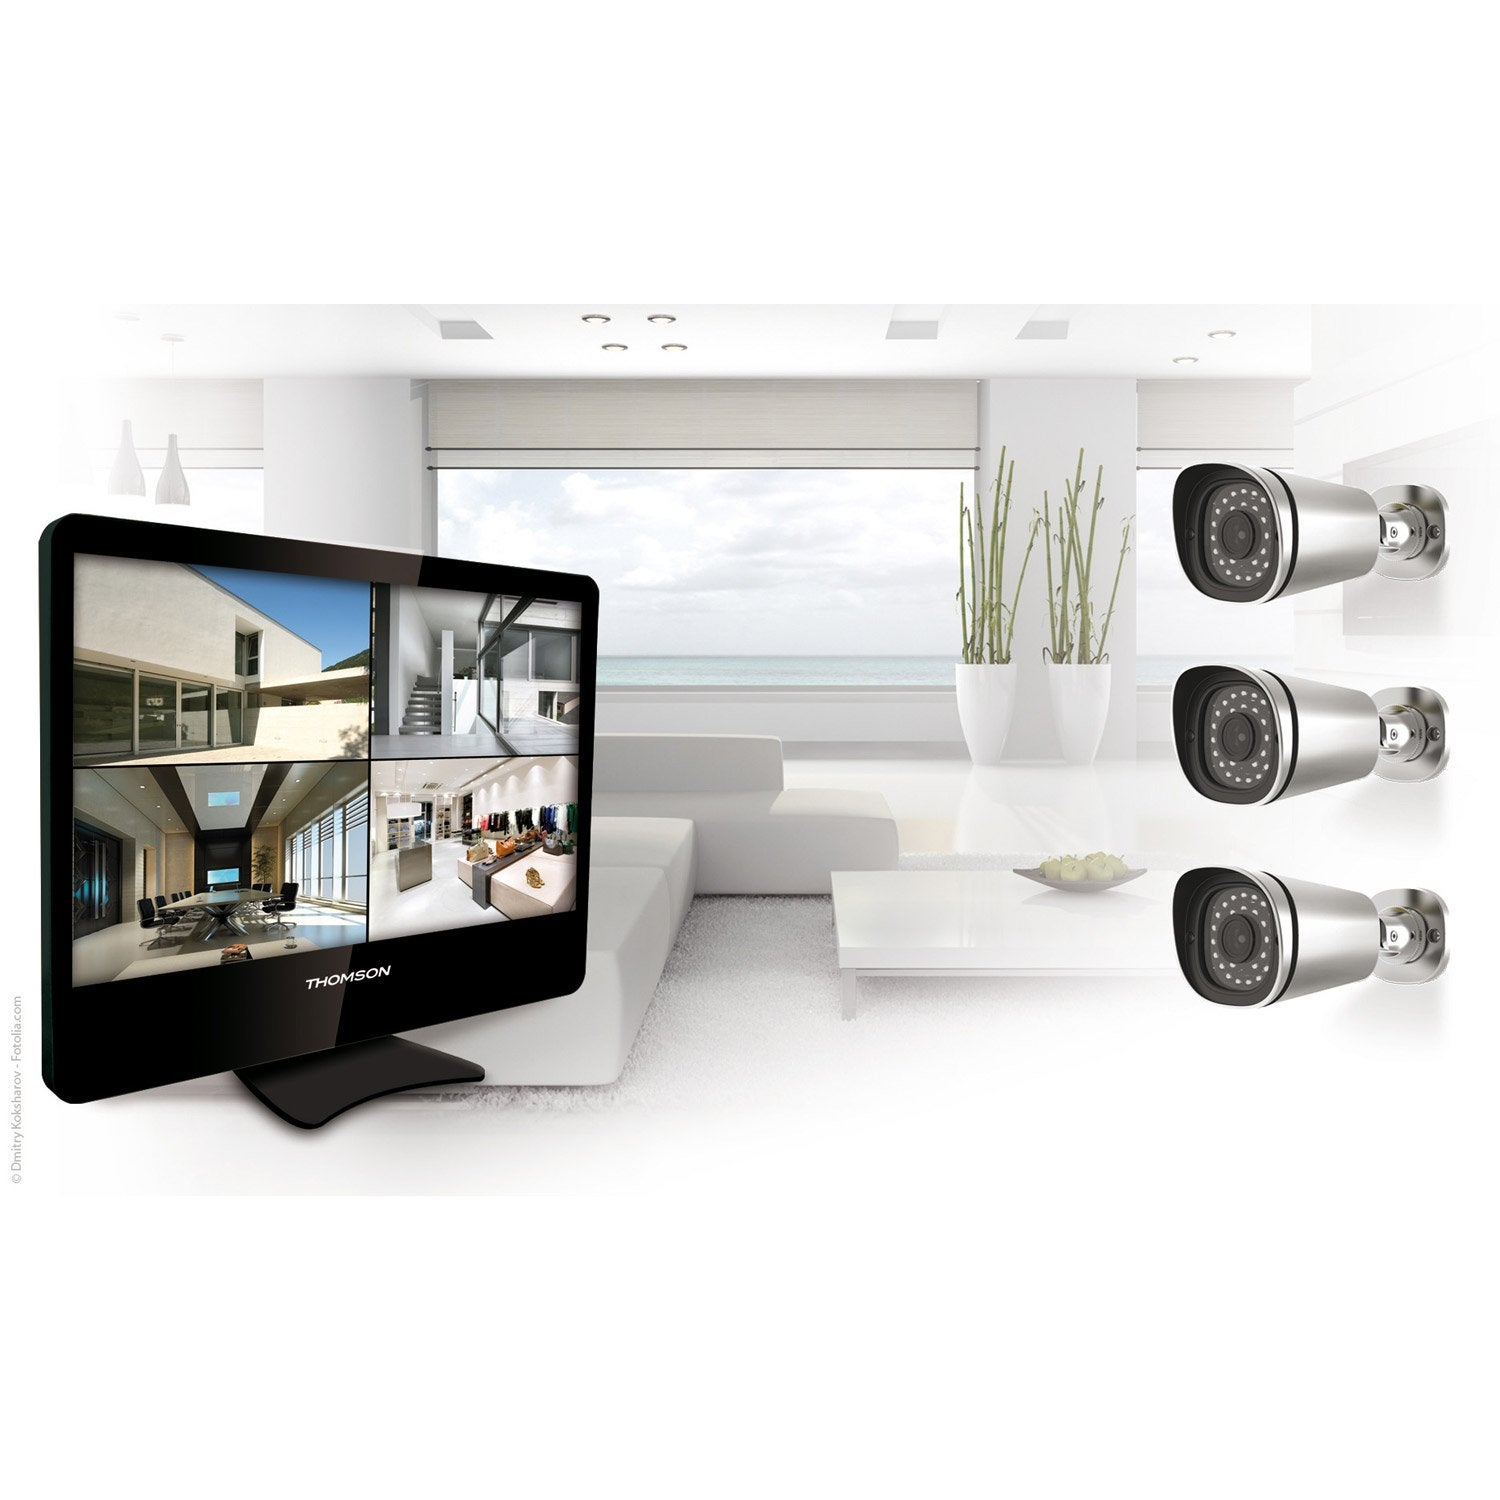 kit de vid osurveillance connect filaire int rieur. Black Bedroom Furniture Sets. Home Design Ideas